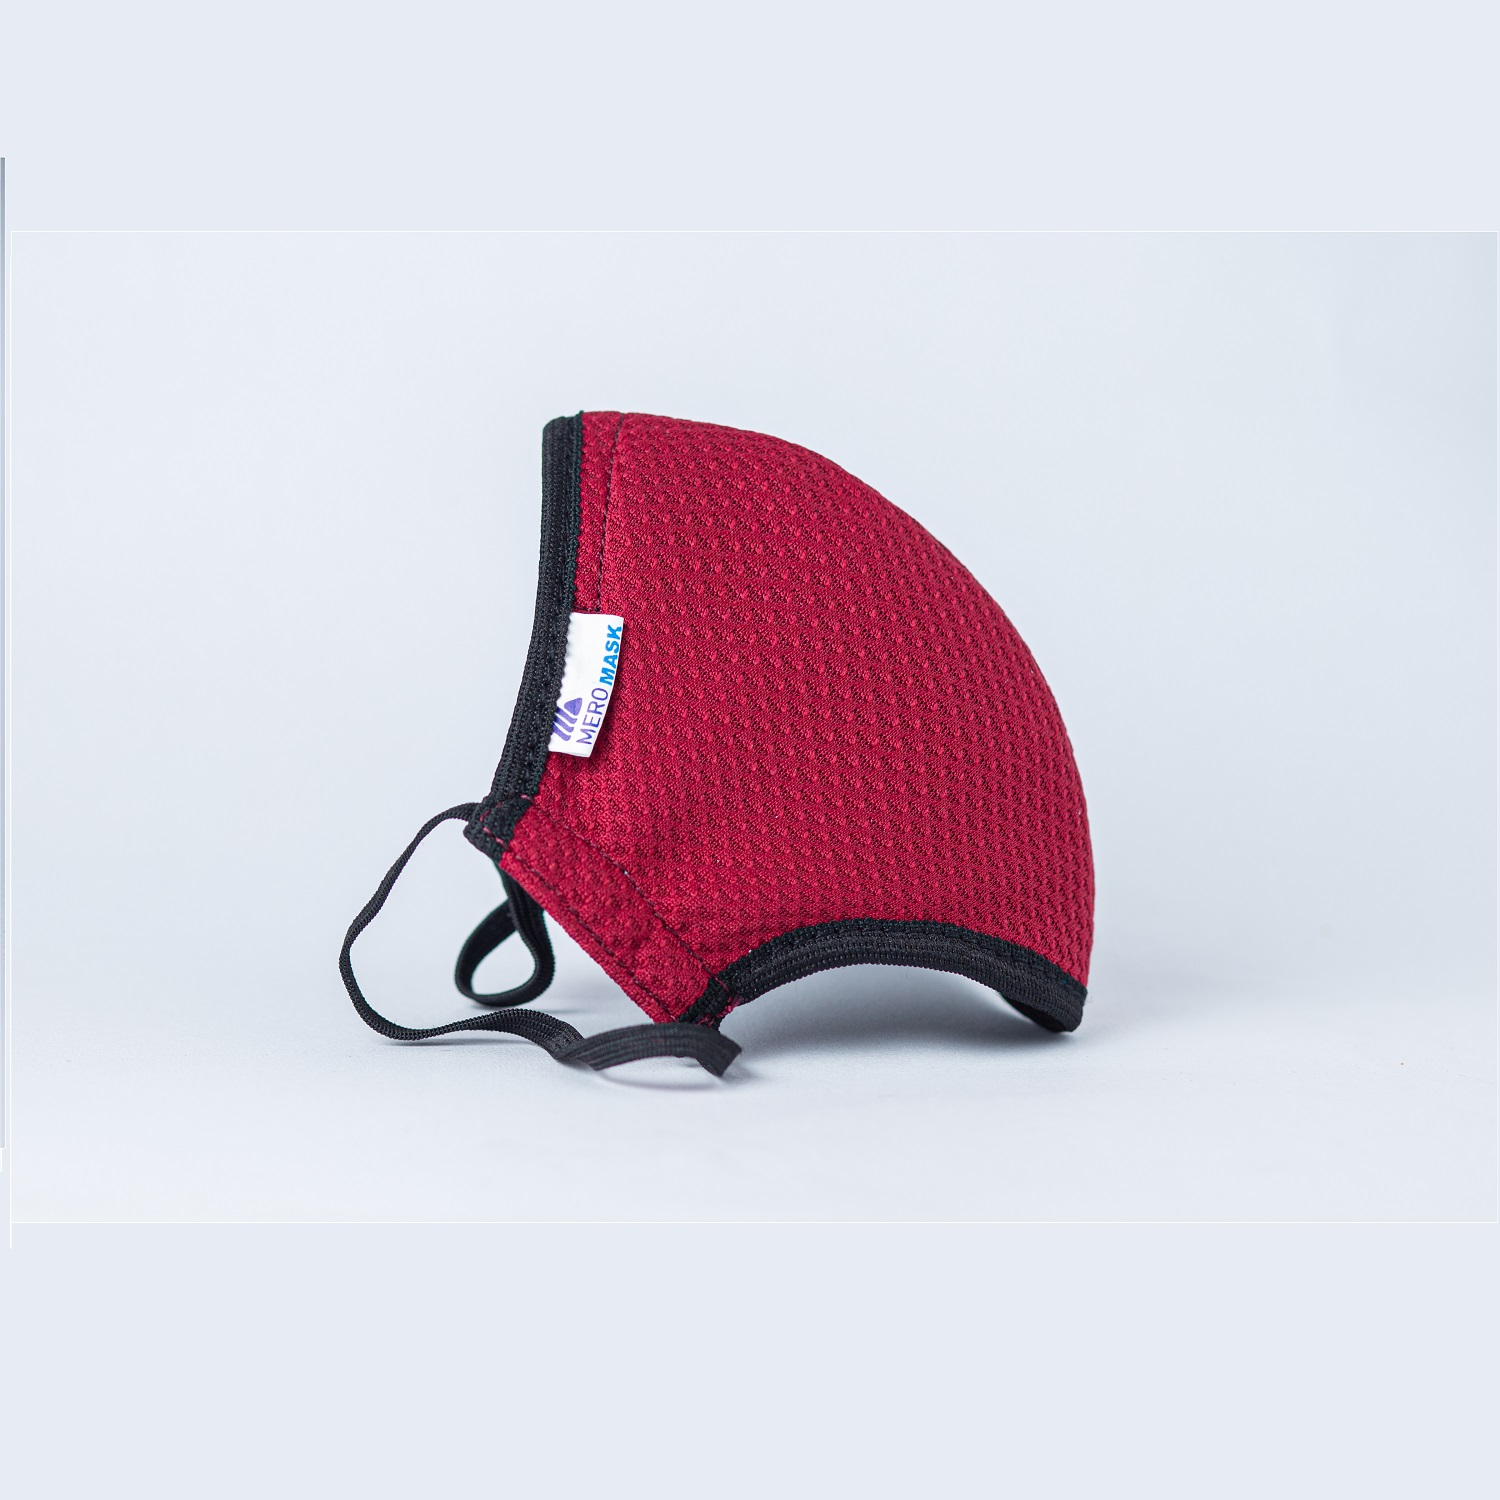 Mero Mask - Red With Filter - Unisex